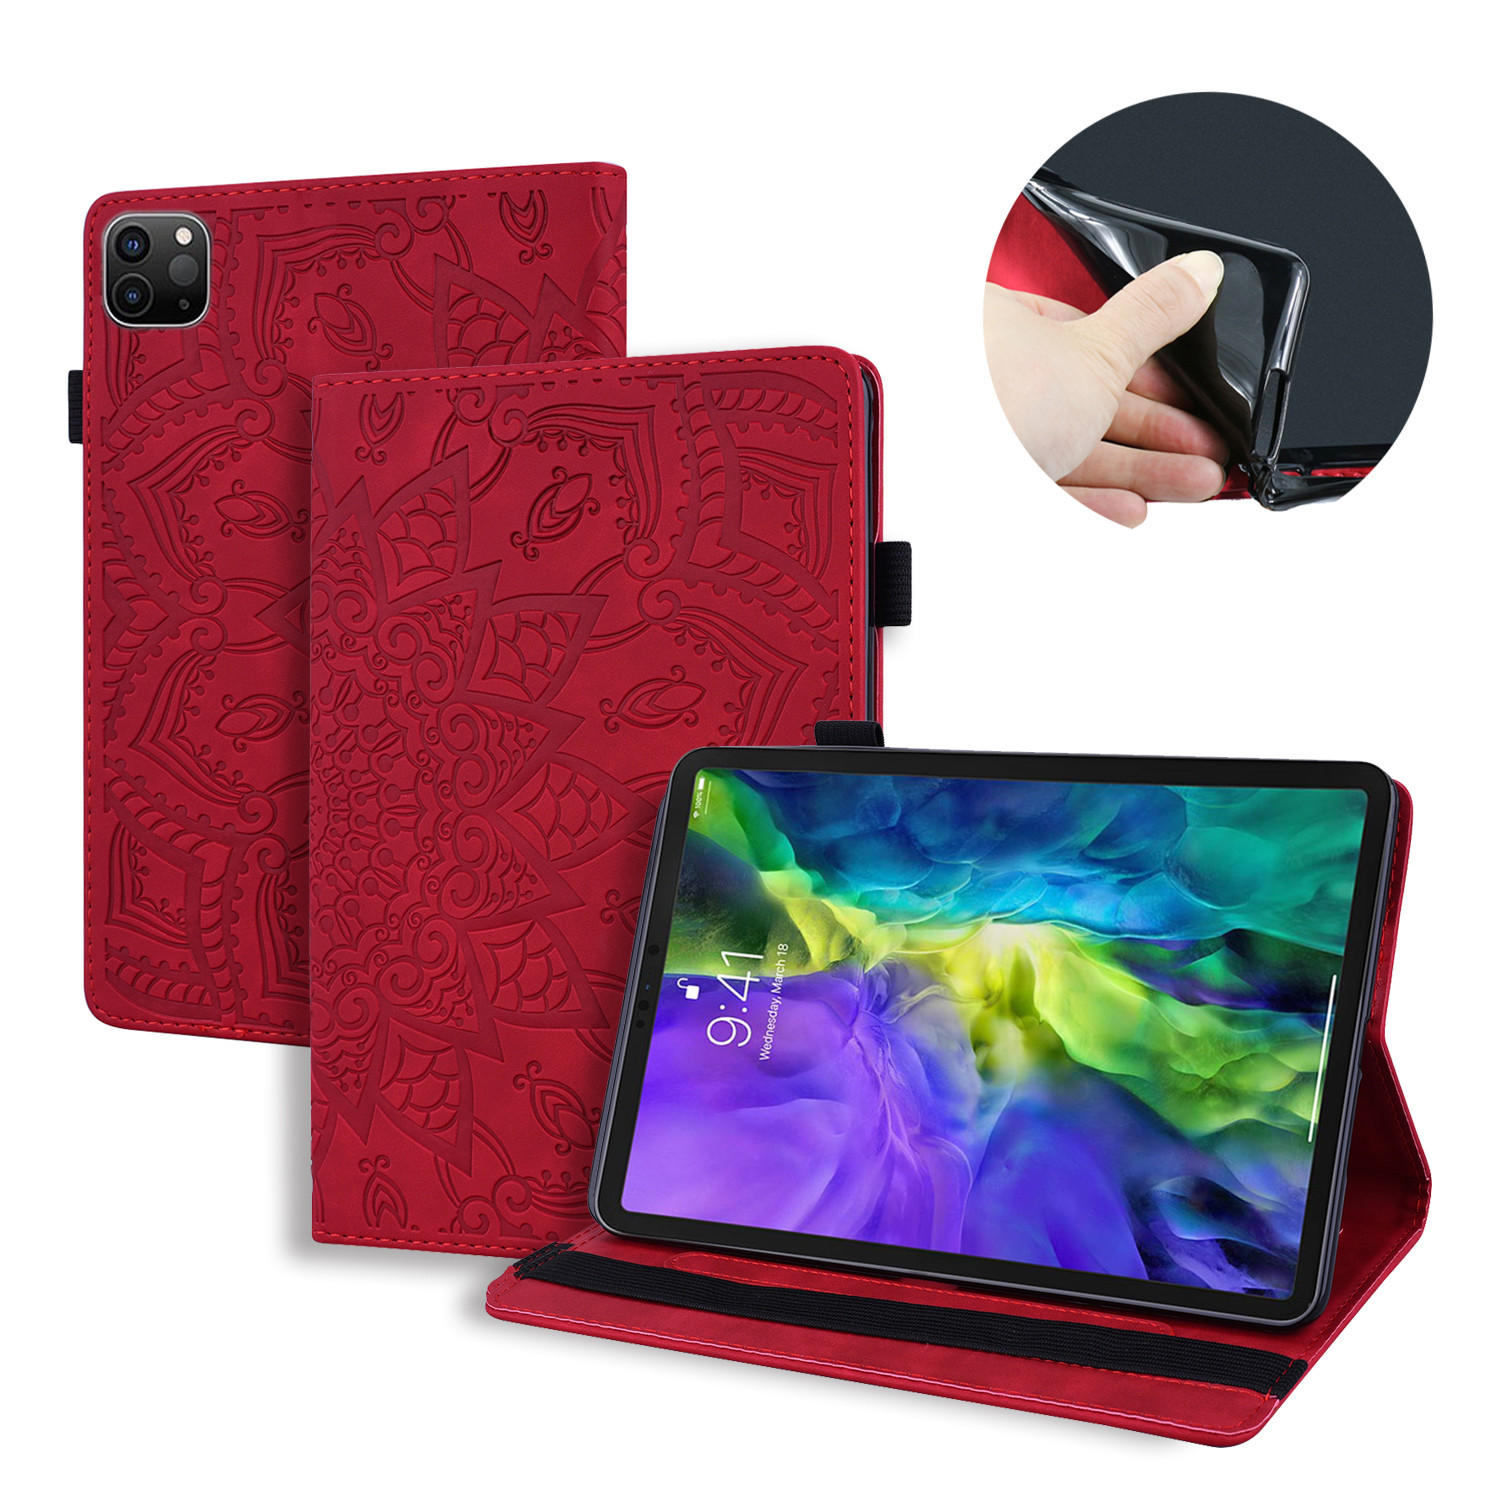 Red Green Flower Embossed Tablet Cover For iPad Pro 2020 Case 12 9 4th Generation Tablet Cover Fold